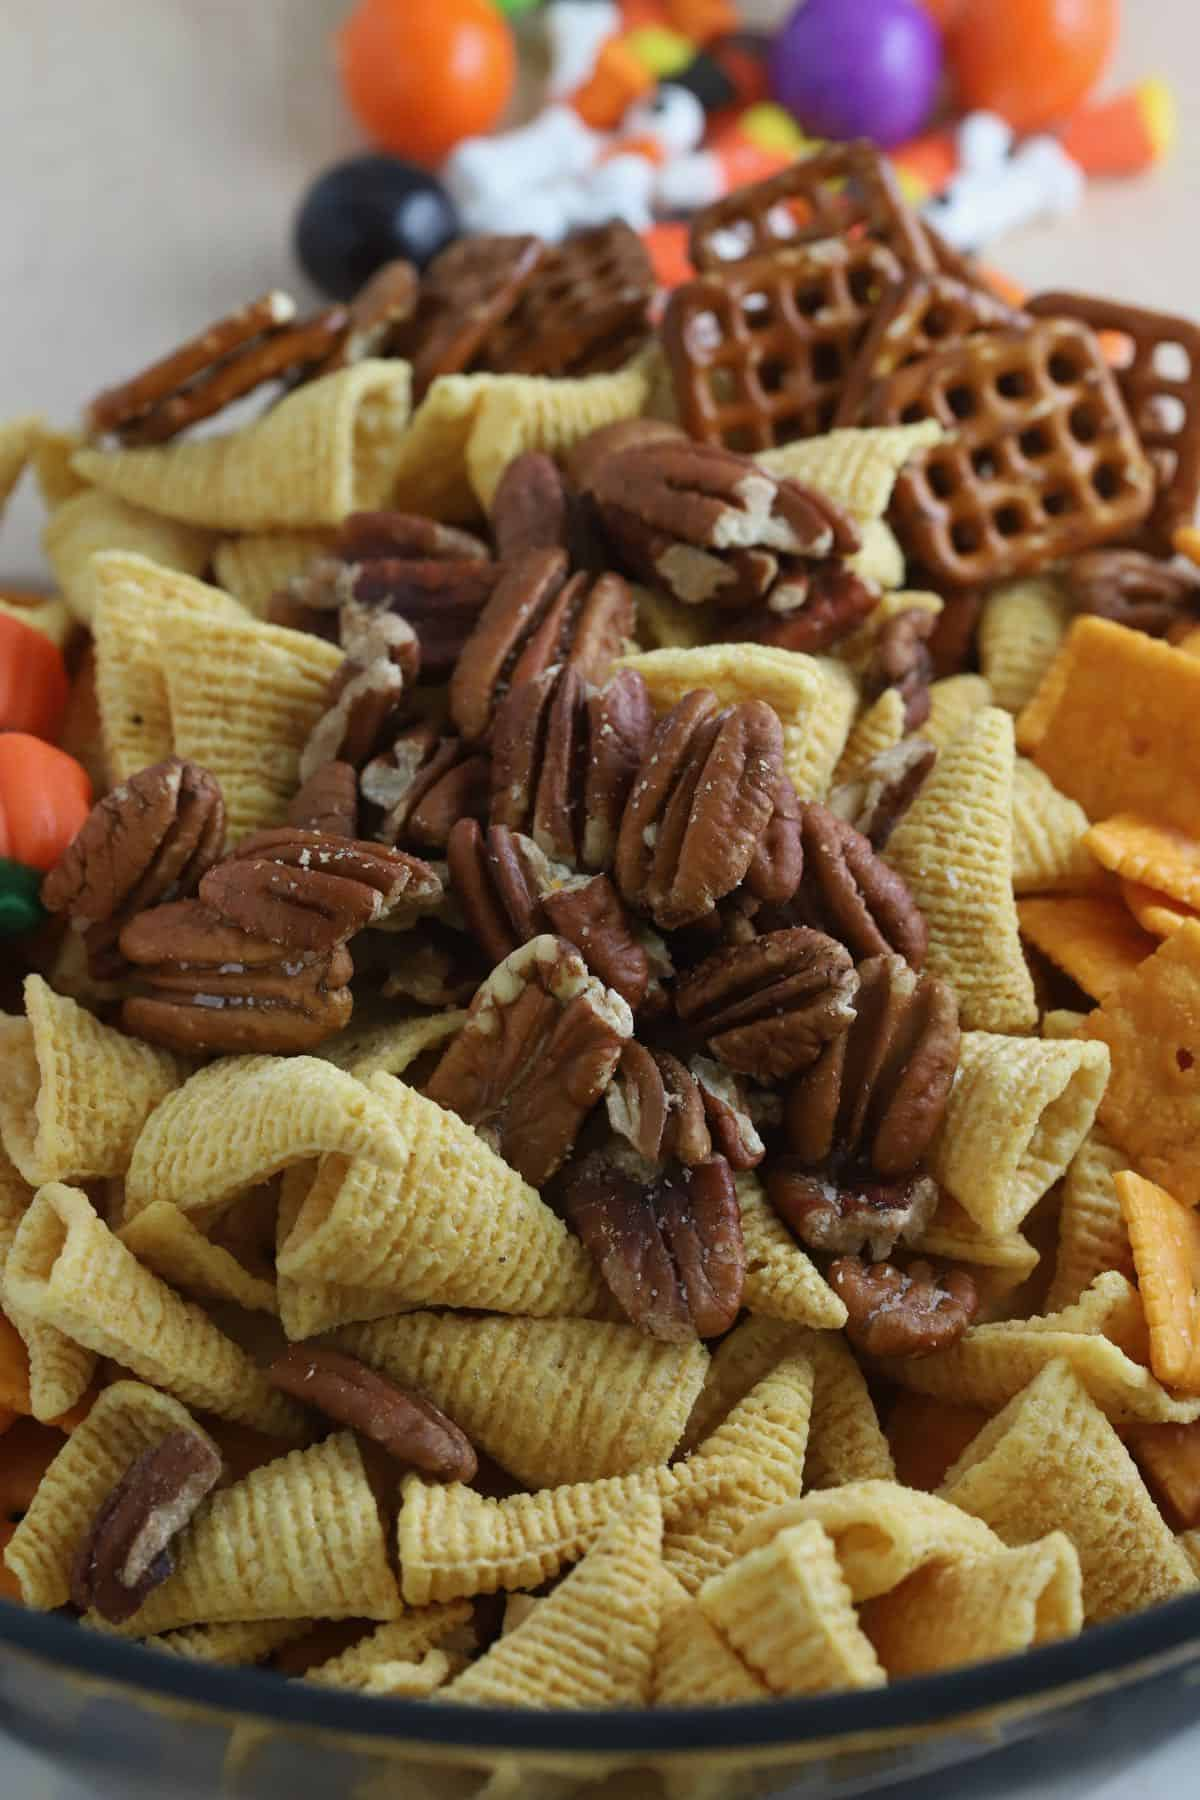 Snack mix made with Bugles and pretzels in a bowl.